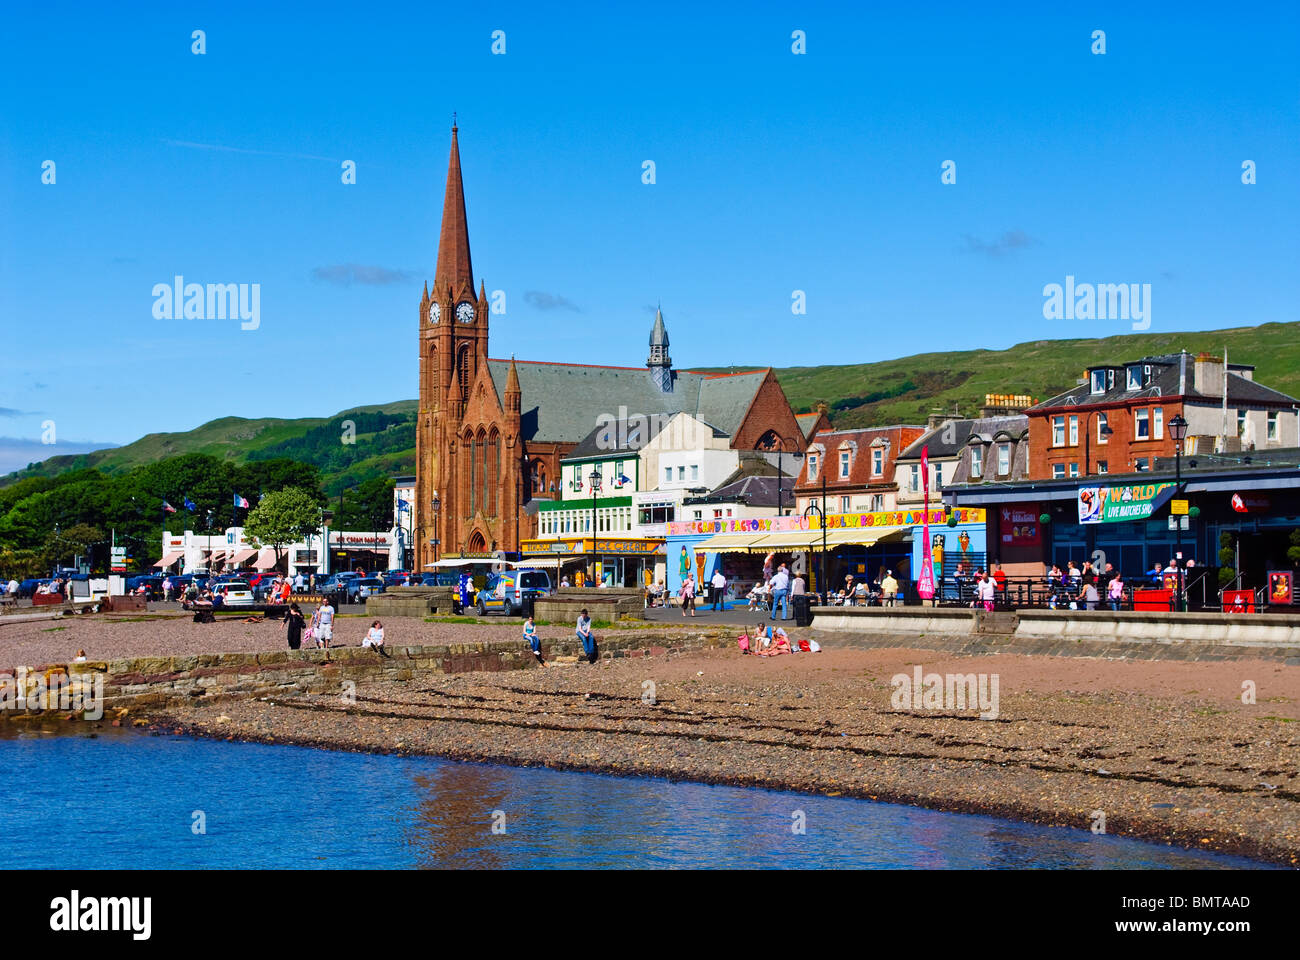 The Scottish seaside town of Largs Stock Photo: 30038469 - Alamy